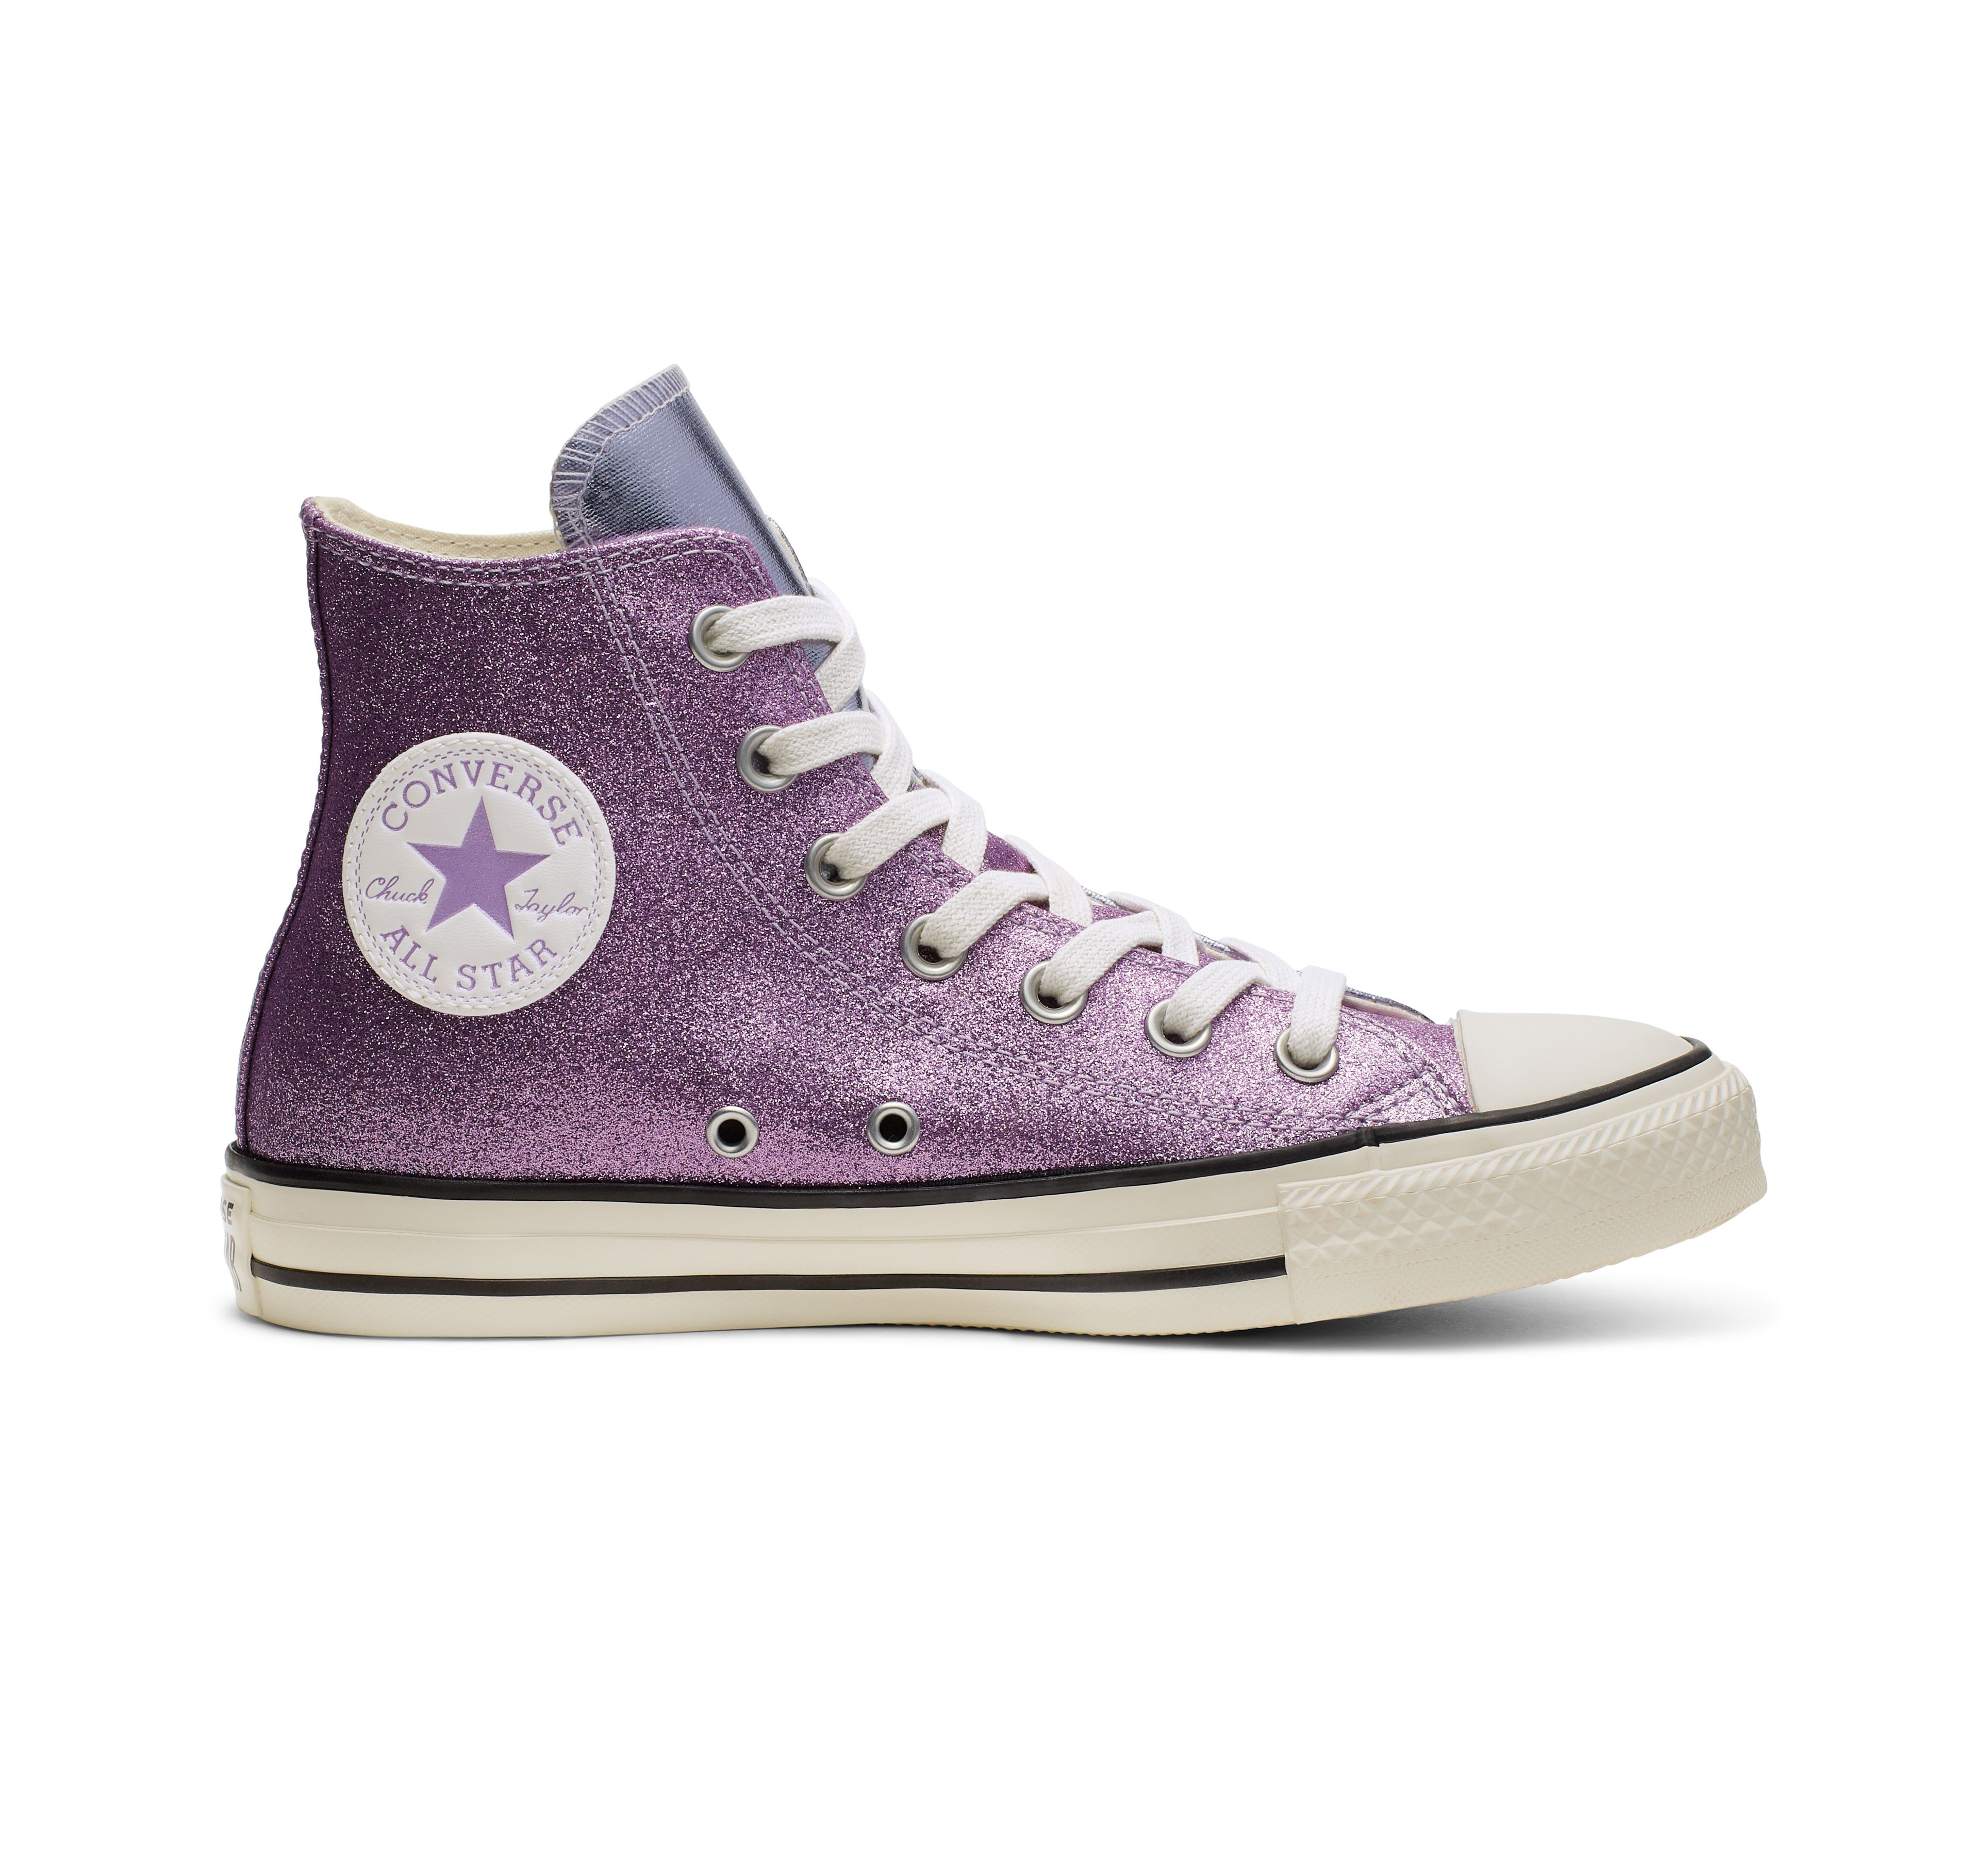 246d874e56e Chuck Taylor All Star Shiny Metal High Top in 2019